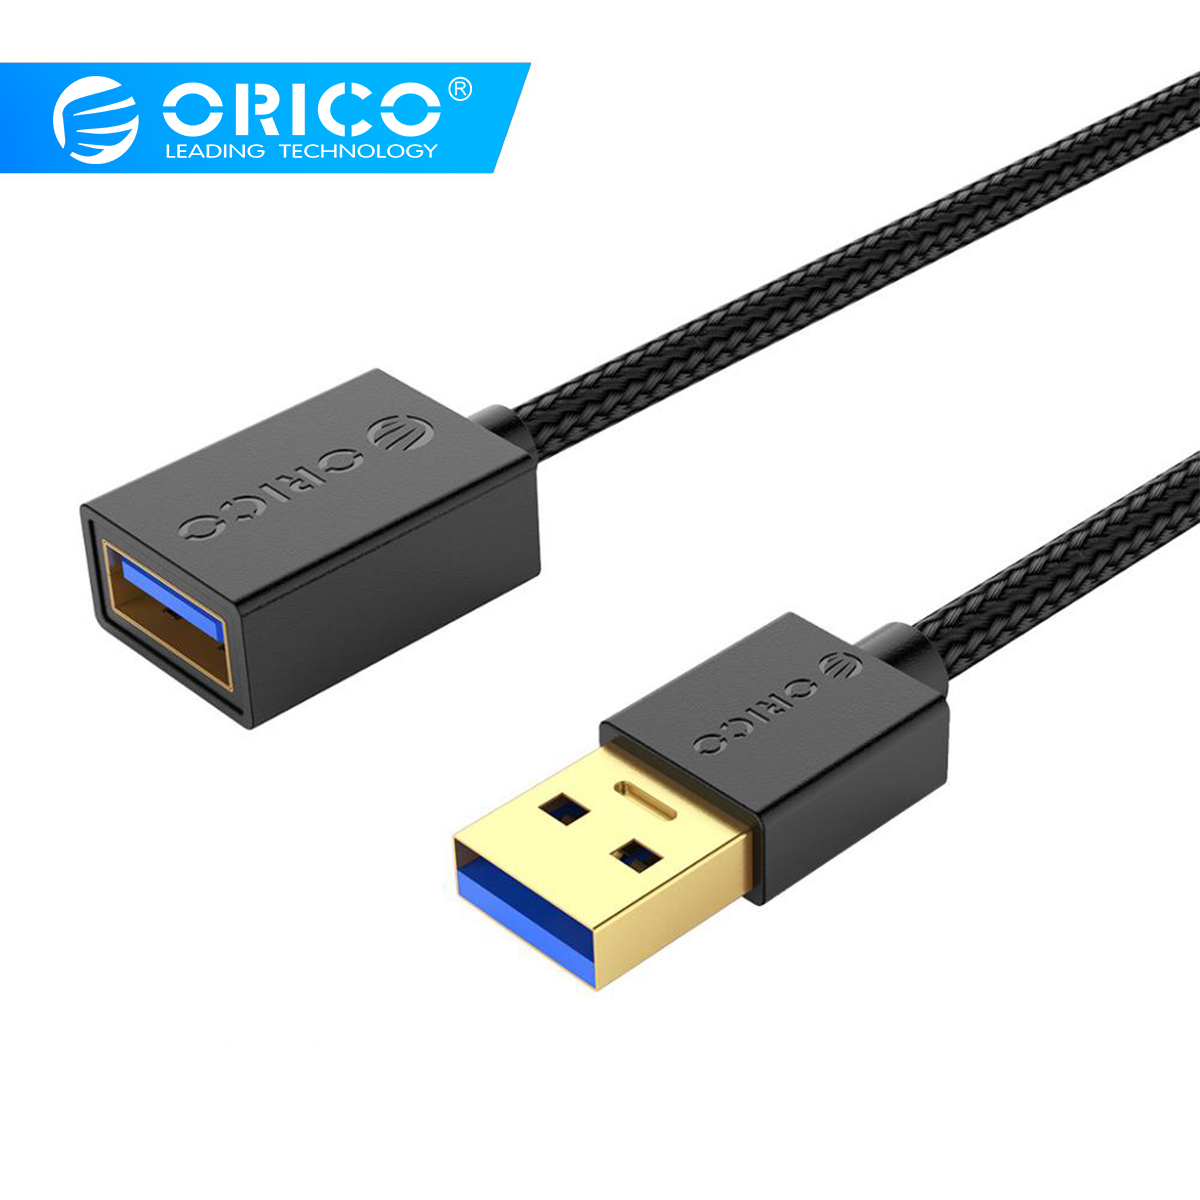 ORICO USB Extension Cable USB 3.0 USB2.0 Cable For Smart TV PS4 Xbox One SSD USB3.0 2.0 Type-A Extender USB Extension Cable